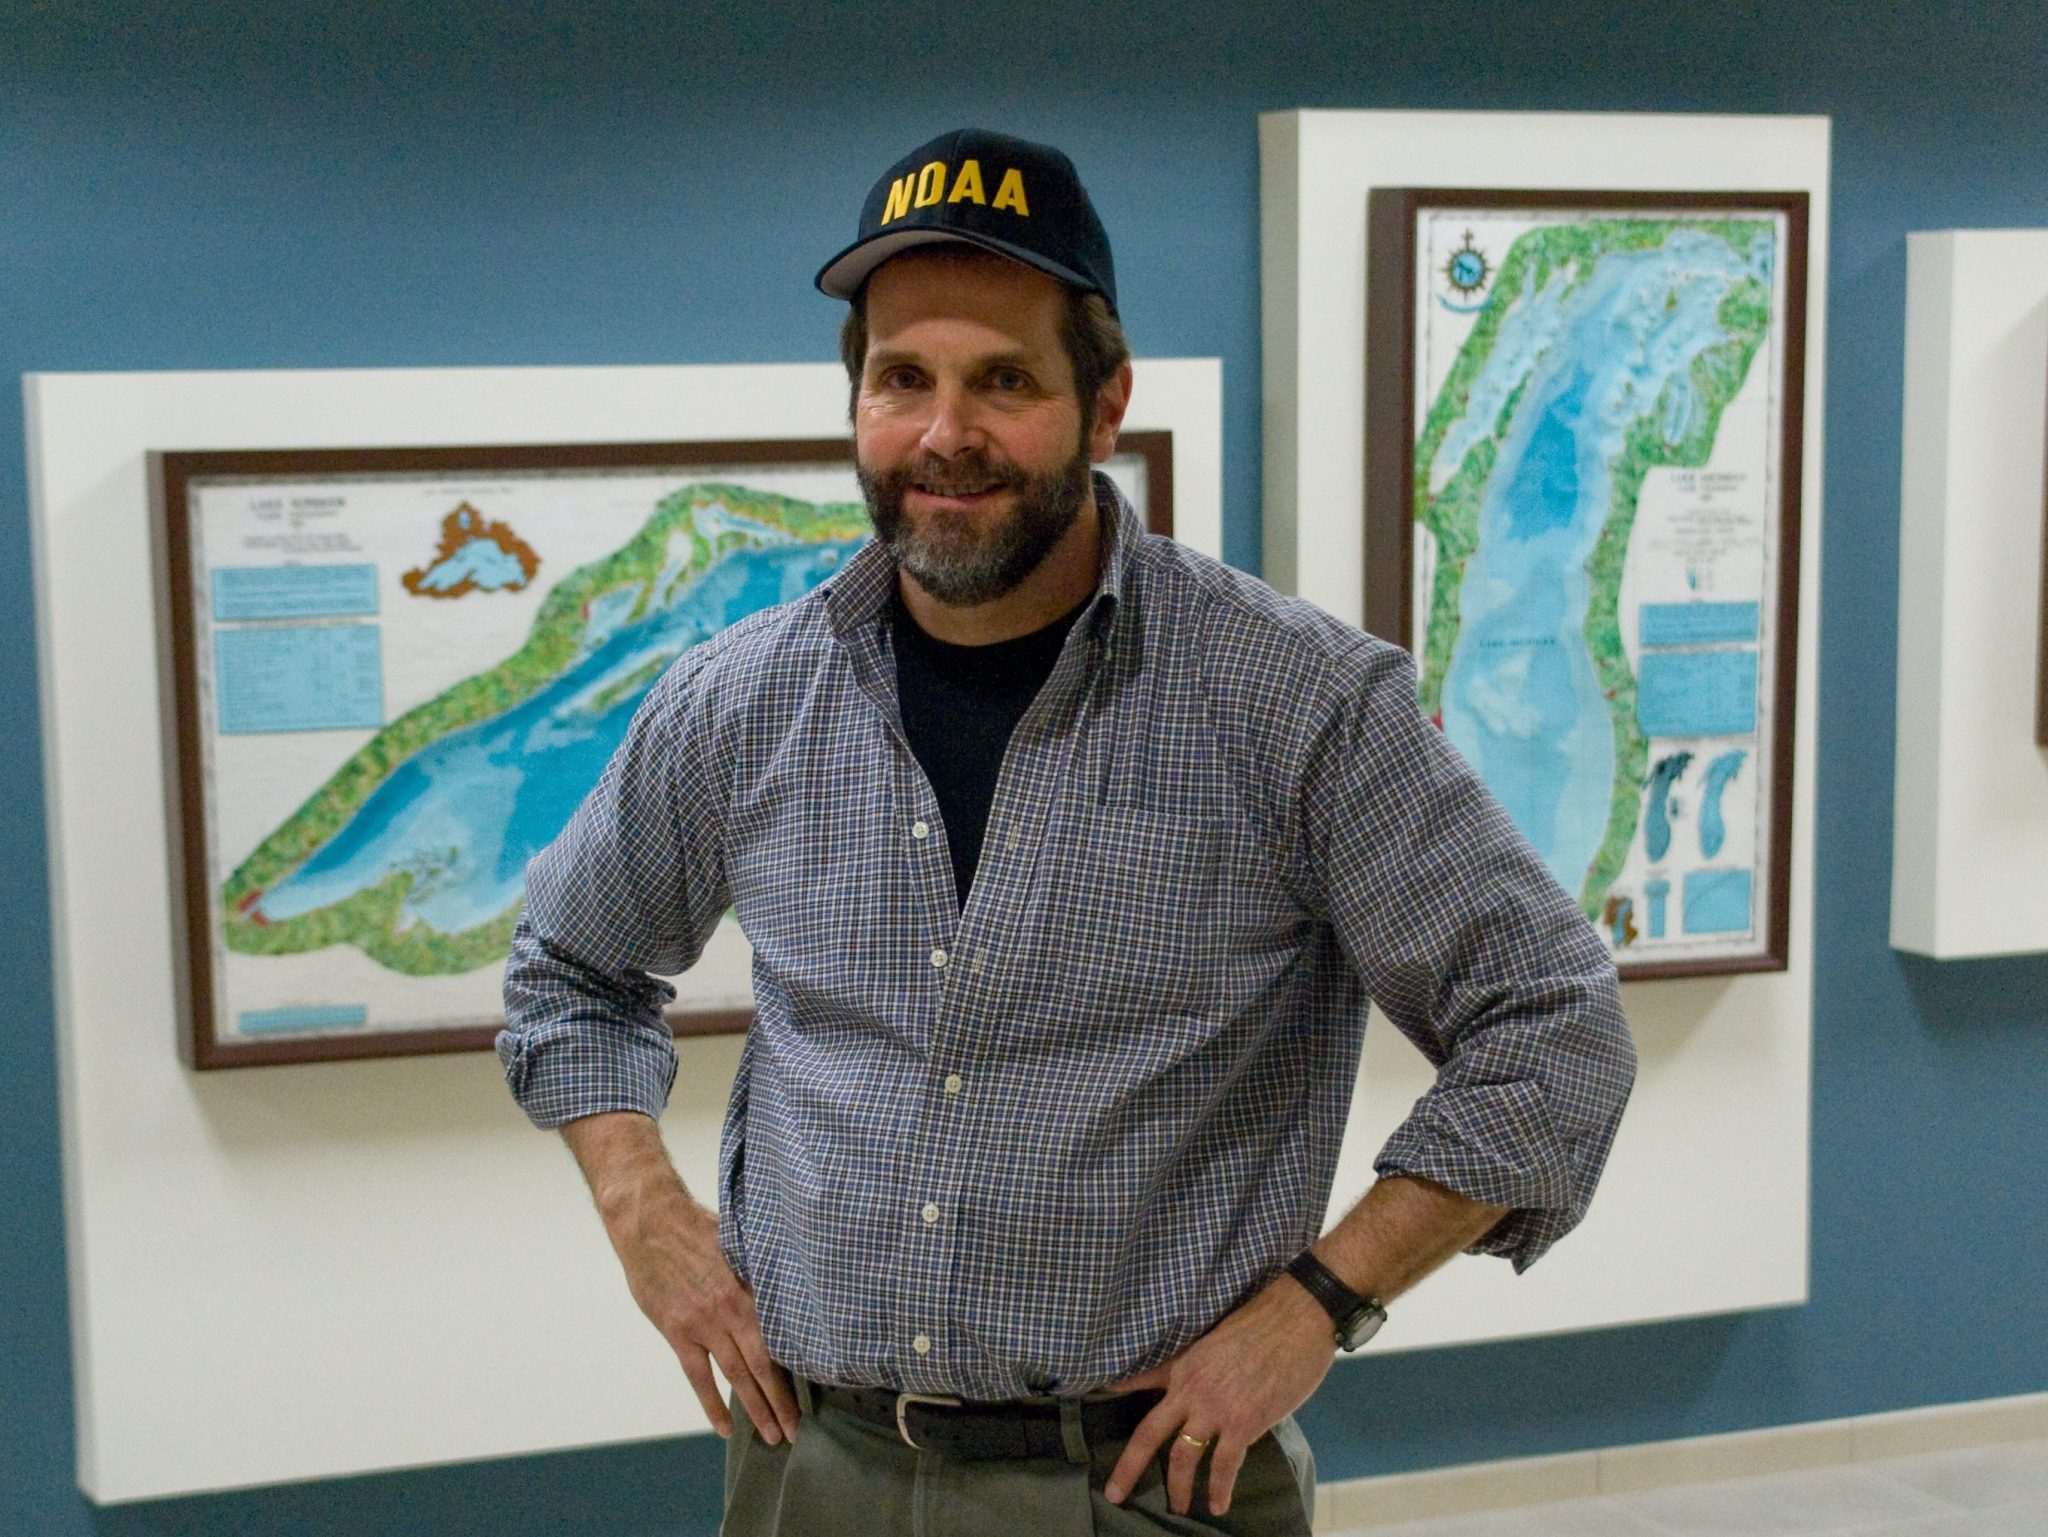 A man in a baseball cap stands in the GLERL lobby in front of some 3-d bathymetry maps of the Great Lakes